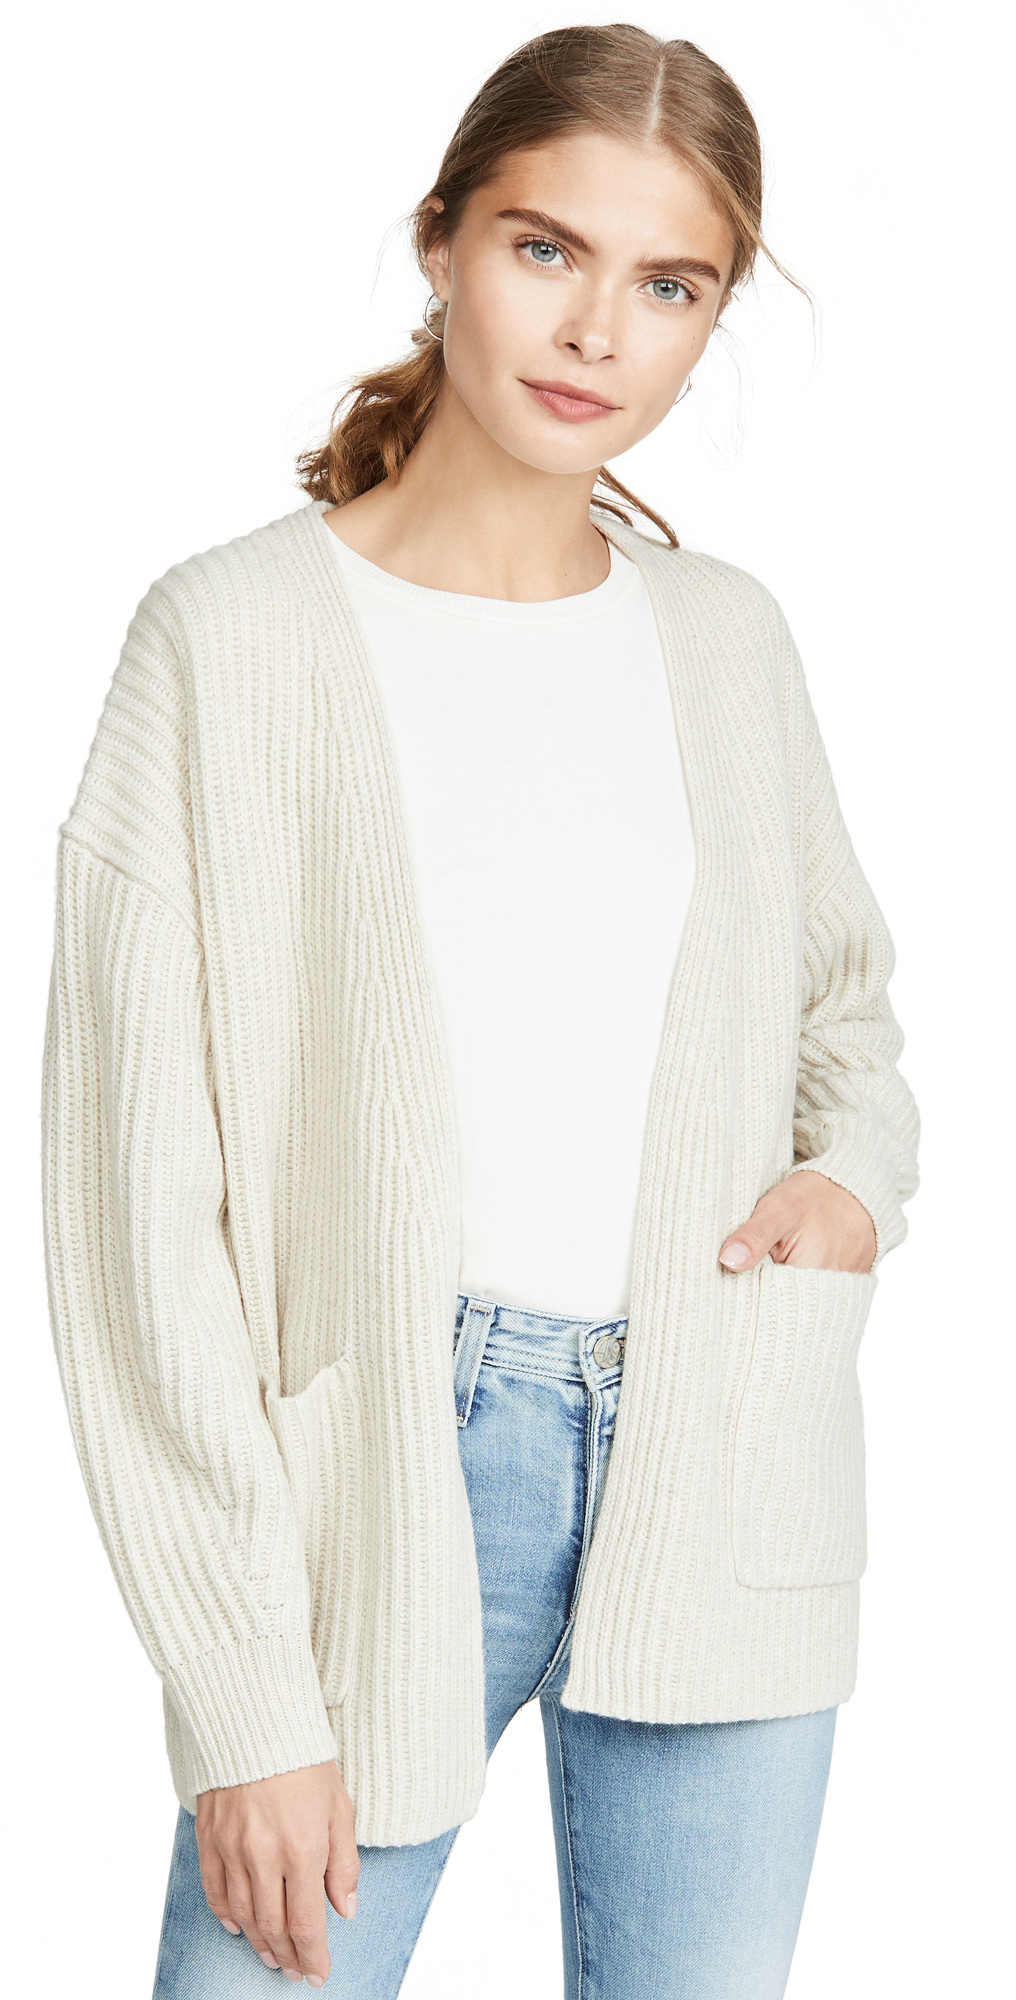 Madewell Walnut Rib Stitch Sweater